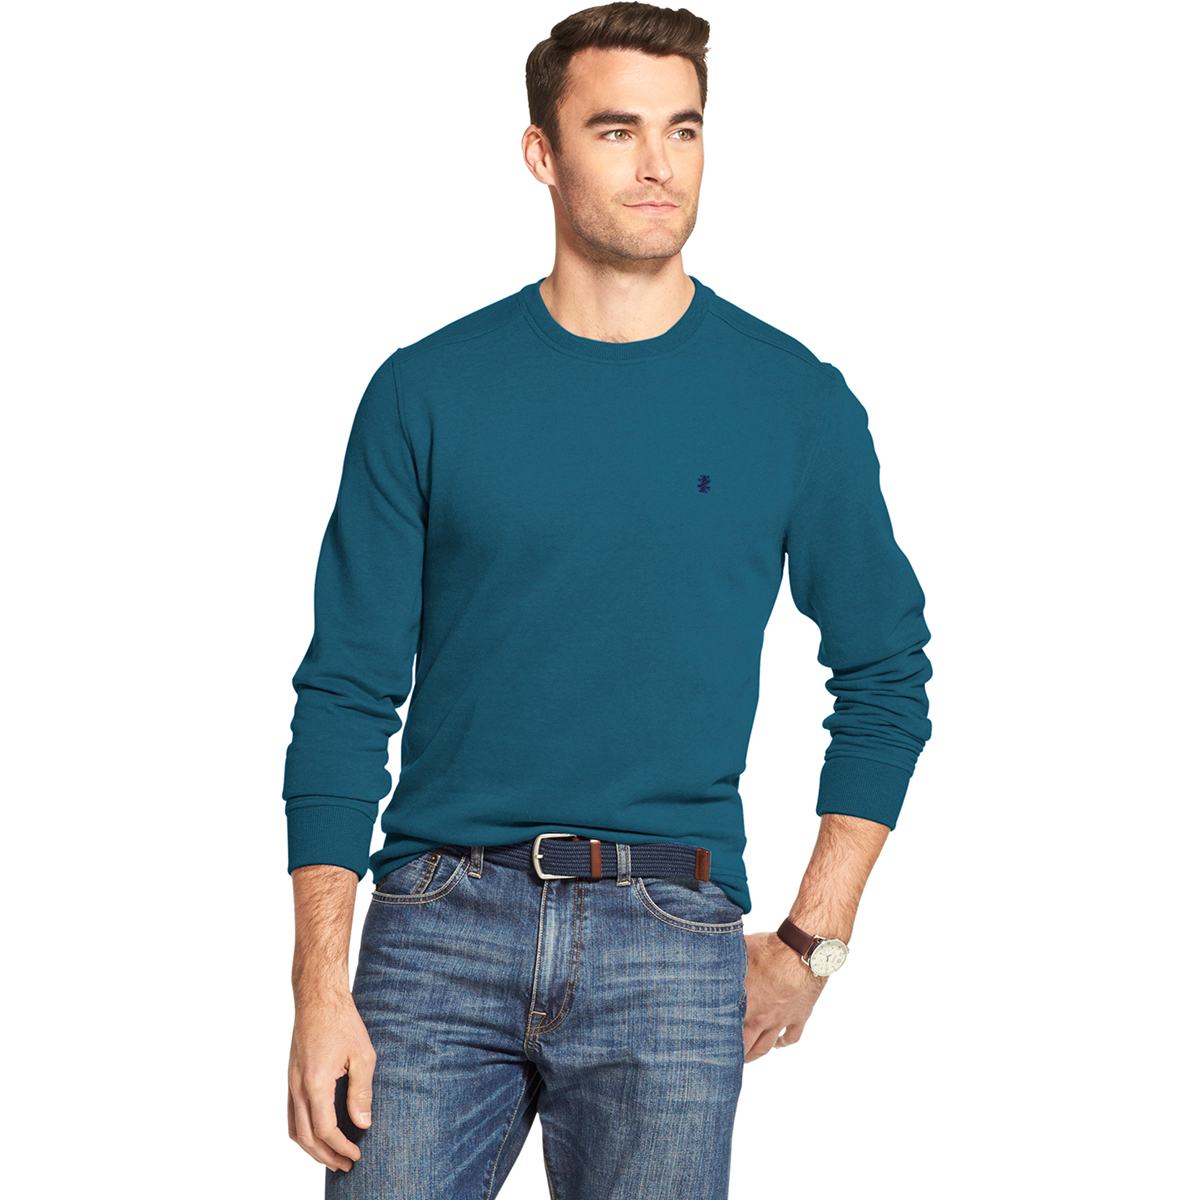 Izod Men's Long-Sleeve Supersoft Fleece Crewneck Sweater - Blue, L